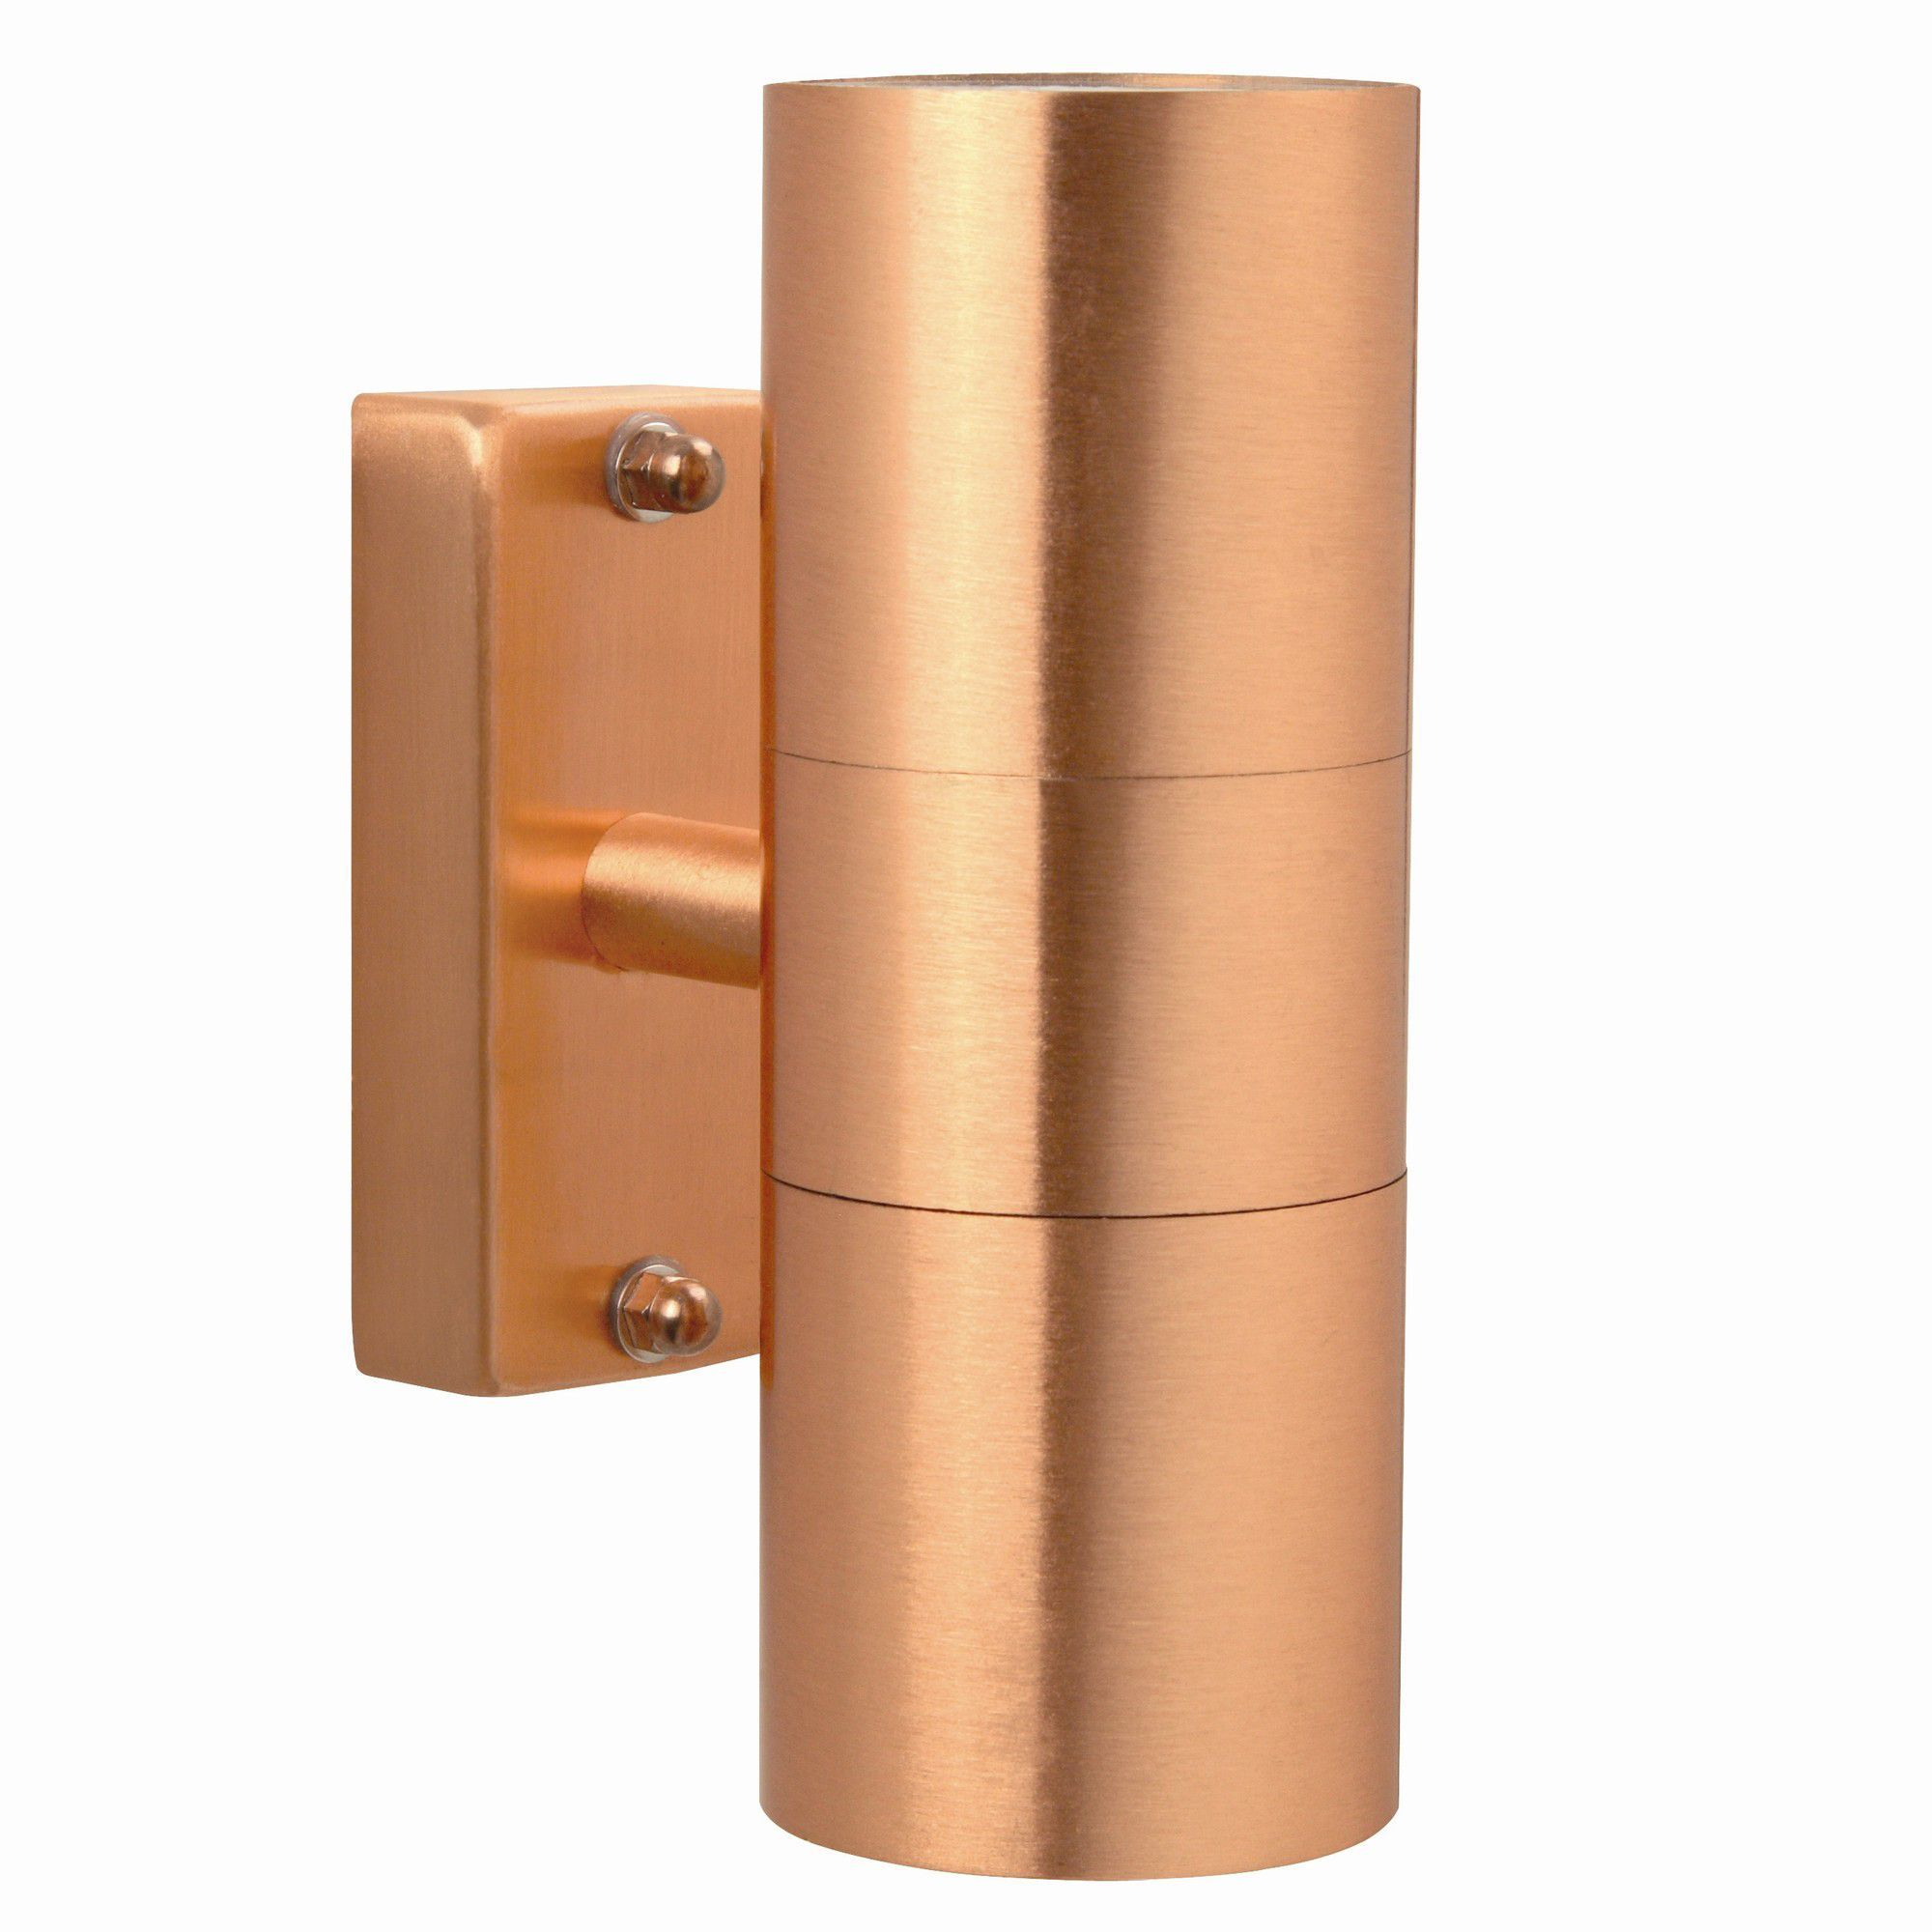 Tesco Direct Nordlux Tin Up And Down Wall Light Copper Wall Lights Nordlux Double Wall Lights